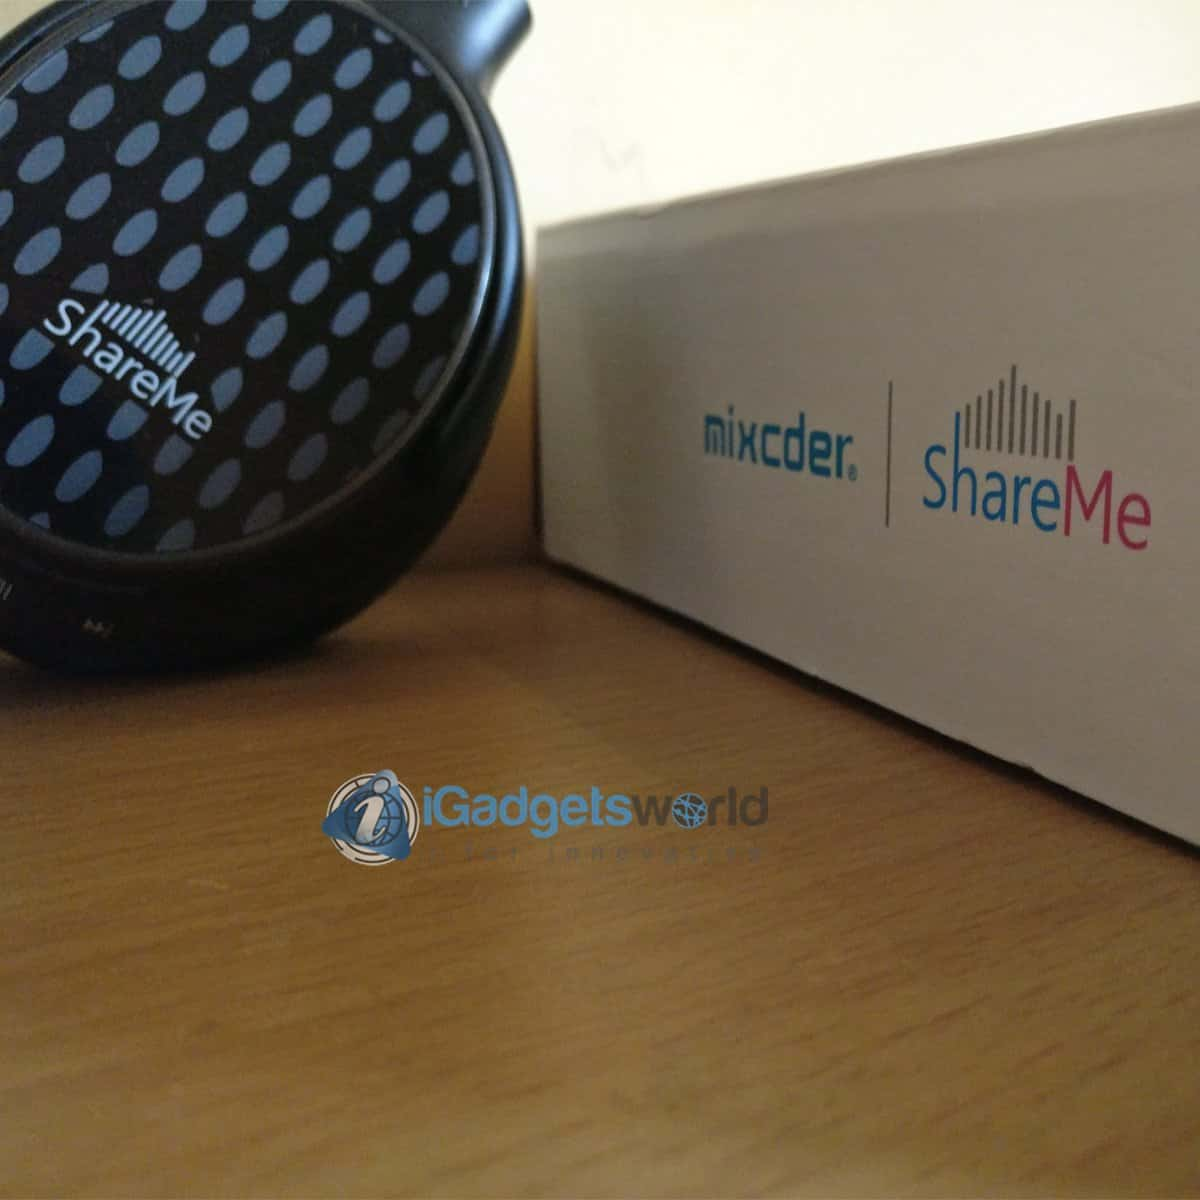 Mixcder ShareMe ProBluetooth headphone Review